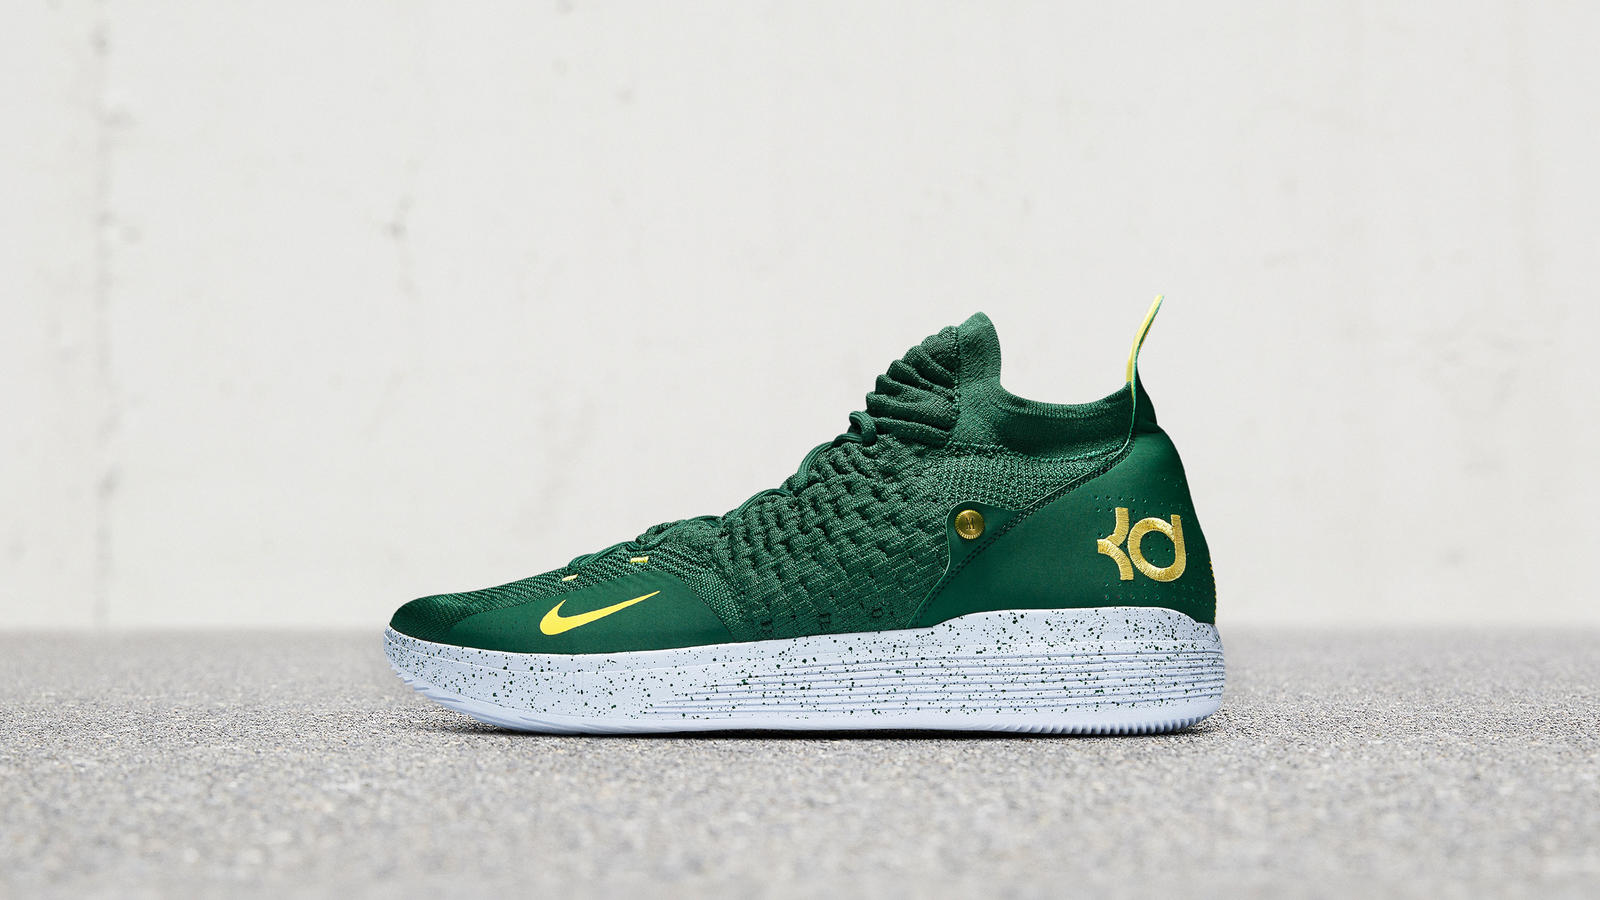 detailed look 64960 a749d ... where can i buy featuredfootwear kd11 seattlepe 10.5.18 487 hd 1600  c0435 736a7